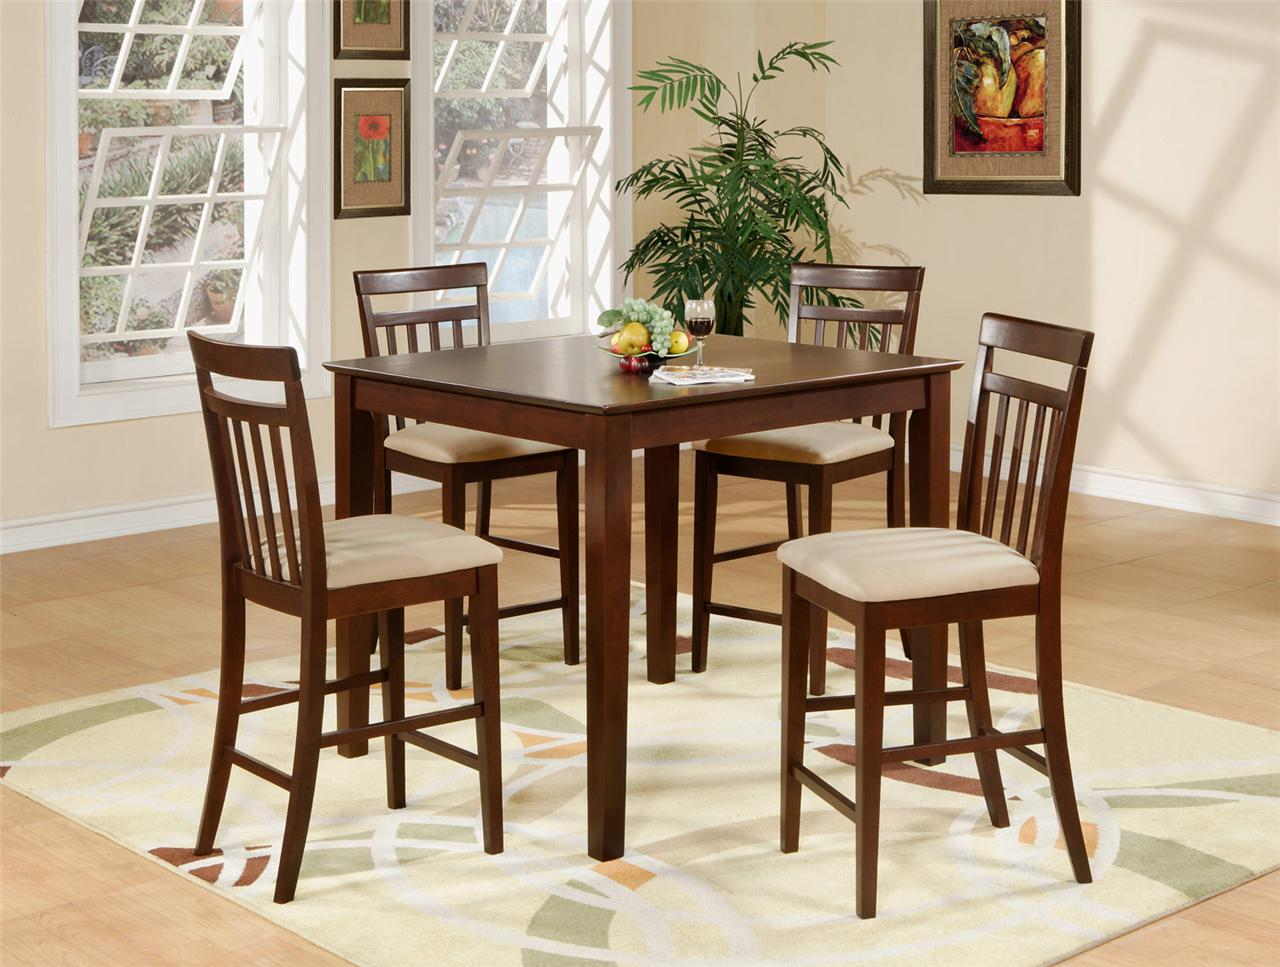 5pc square pub counter height dining table 4 padded chairs stool in mahogany ebay. Black Bedroom Furniture Sets. Home Design Ideas